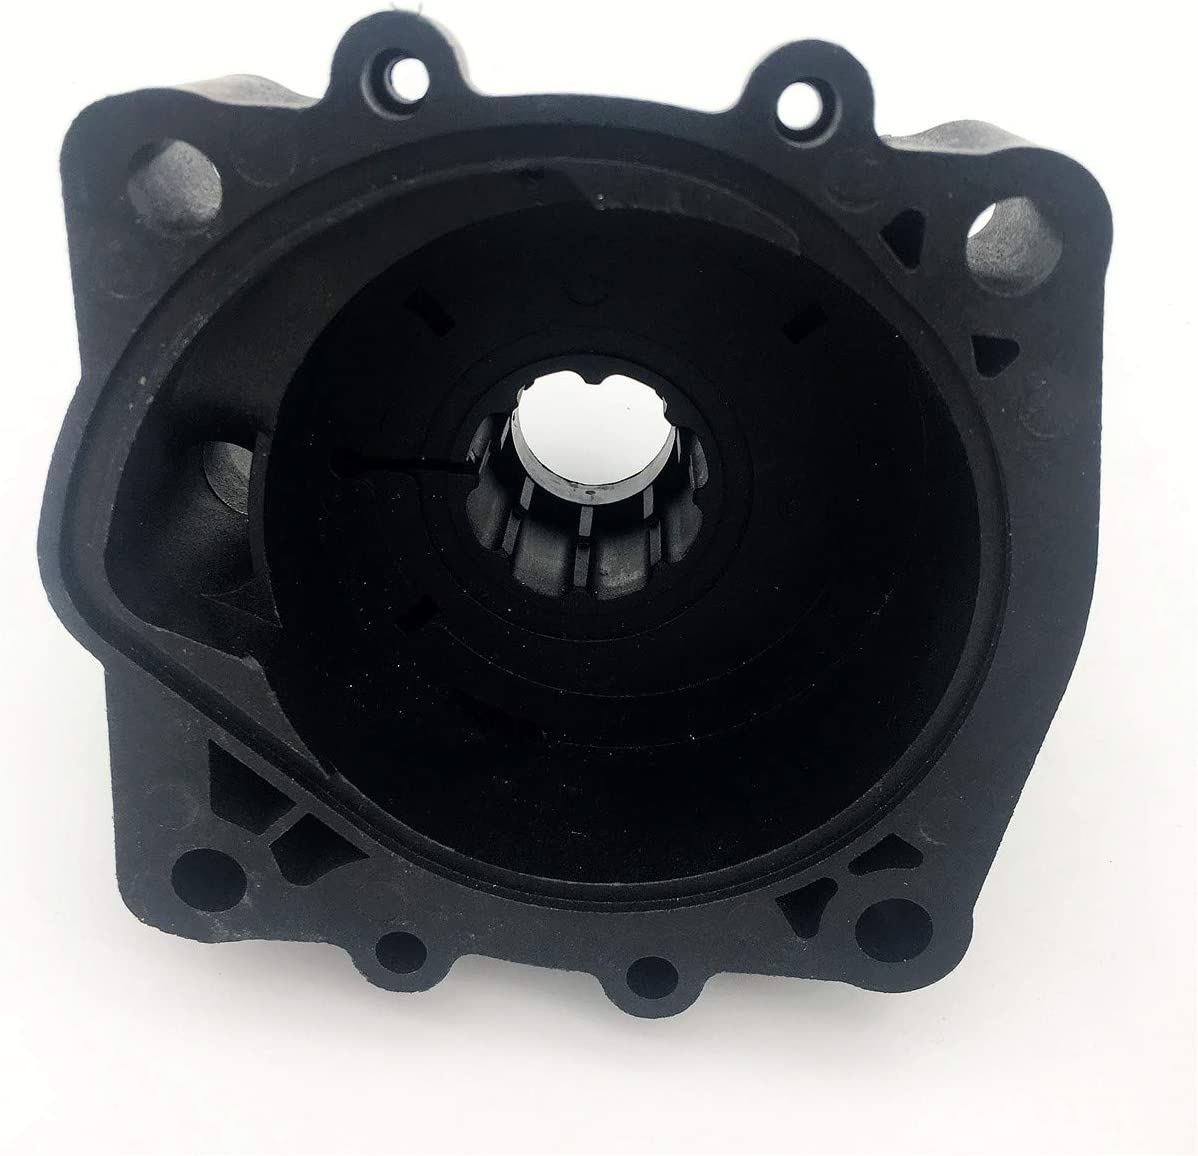 Outboard Water Pump Impeller kit Replacement for Yamaha Boat Engine Sierra 18-3396 61A-W0078-A2-00 61A-W0078-A3-00 with HOUSING